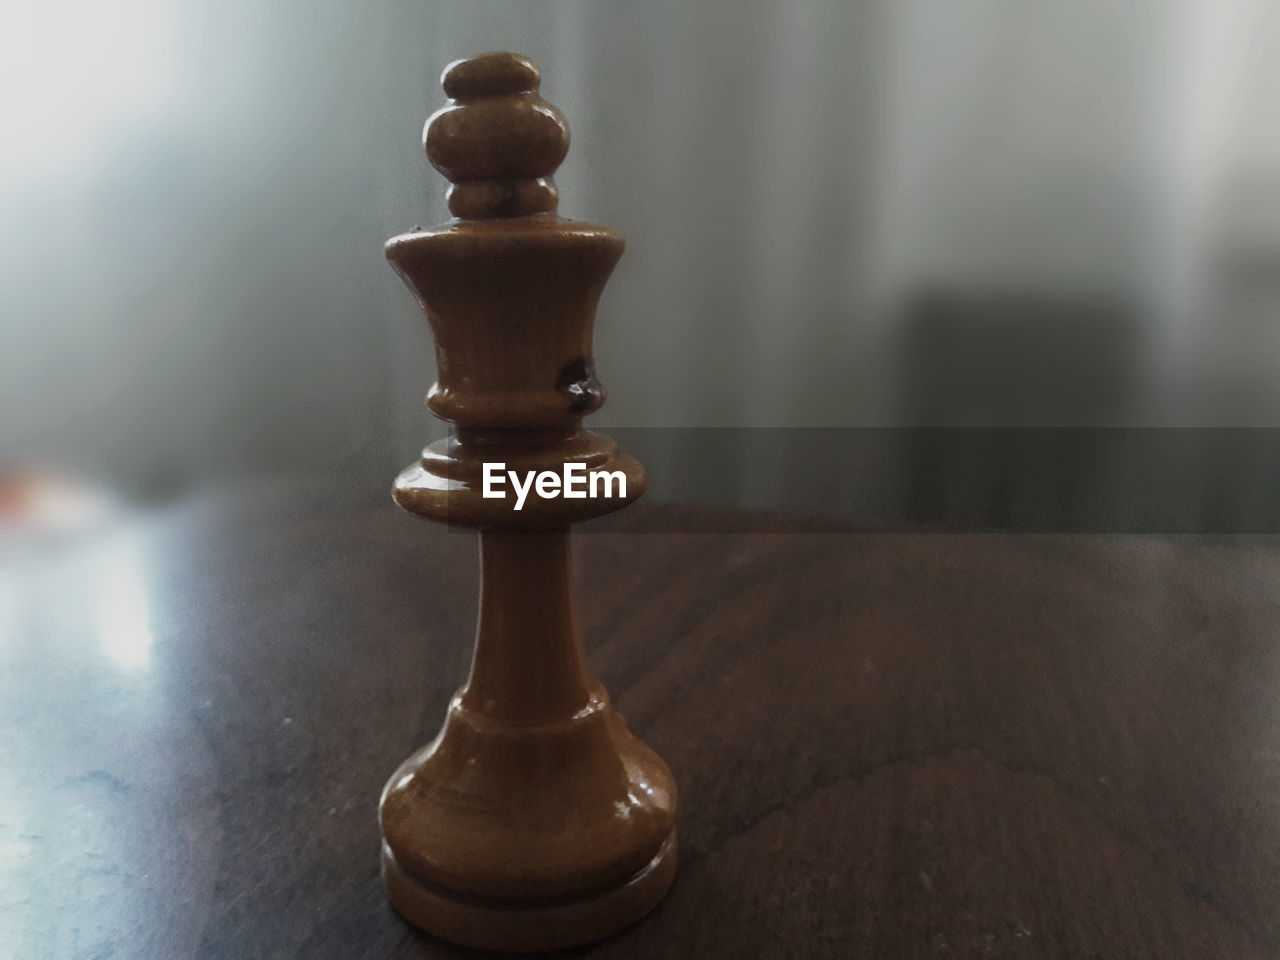 leisure games, chess, board game, game, indoors, close-up, no people, focus on foreground, relaxation, wood - material, chess piece, still life, table, queen - chess piece, strategy, leisure activity, brown, king - chess piece, chess board, day, pawn - chess piece